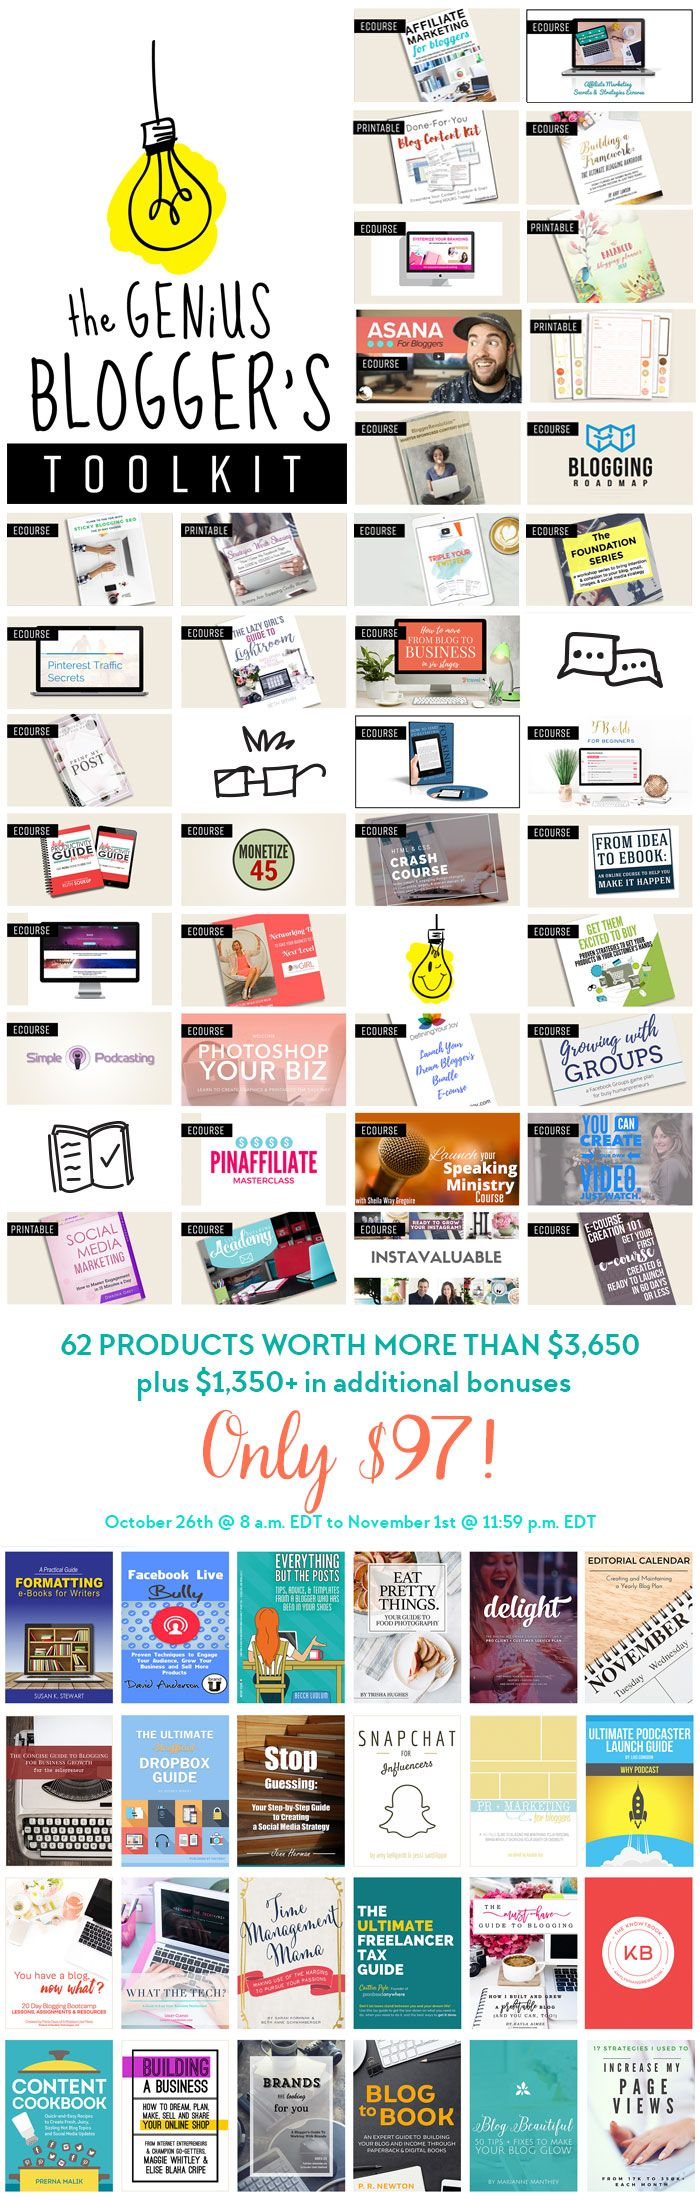 Comfortable 1 Year Experience Resume In Java J2ee Big 100 Bill Template Clean 16x20 Collage Template 17 Worst Things To Say On Your Resume Business Insider Young 1811 Criminal Investigator Resume Bright1st Birthday Coloring Pages 138 Best Images About ::Cute Blogger Templates :: On Pinterest ..